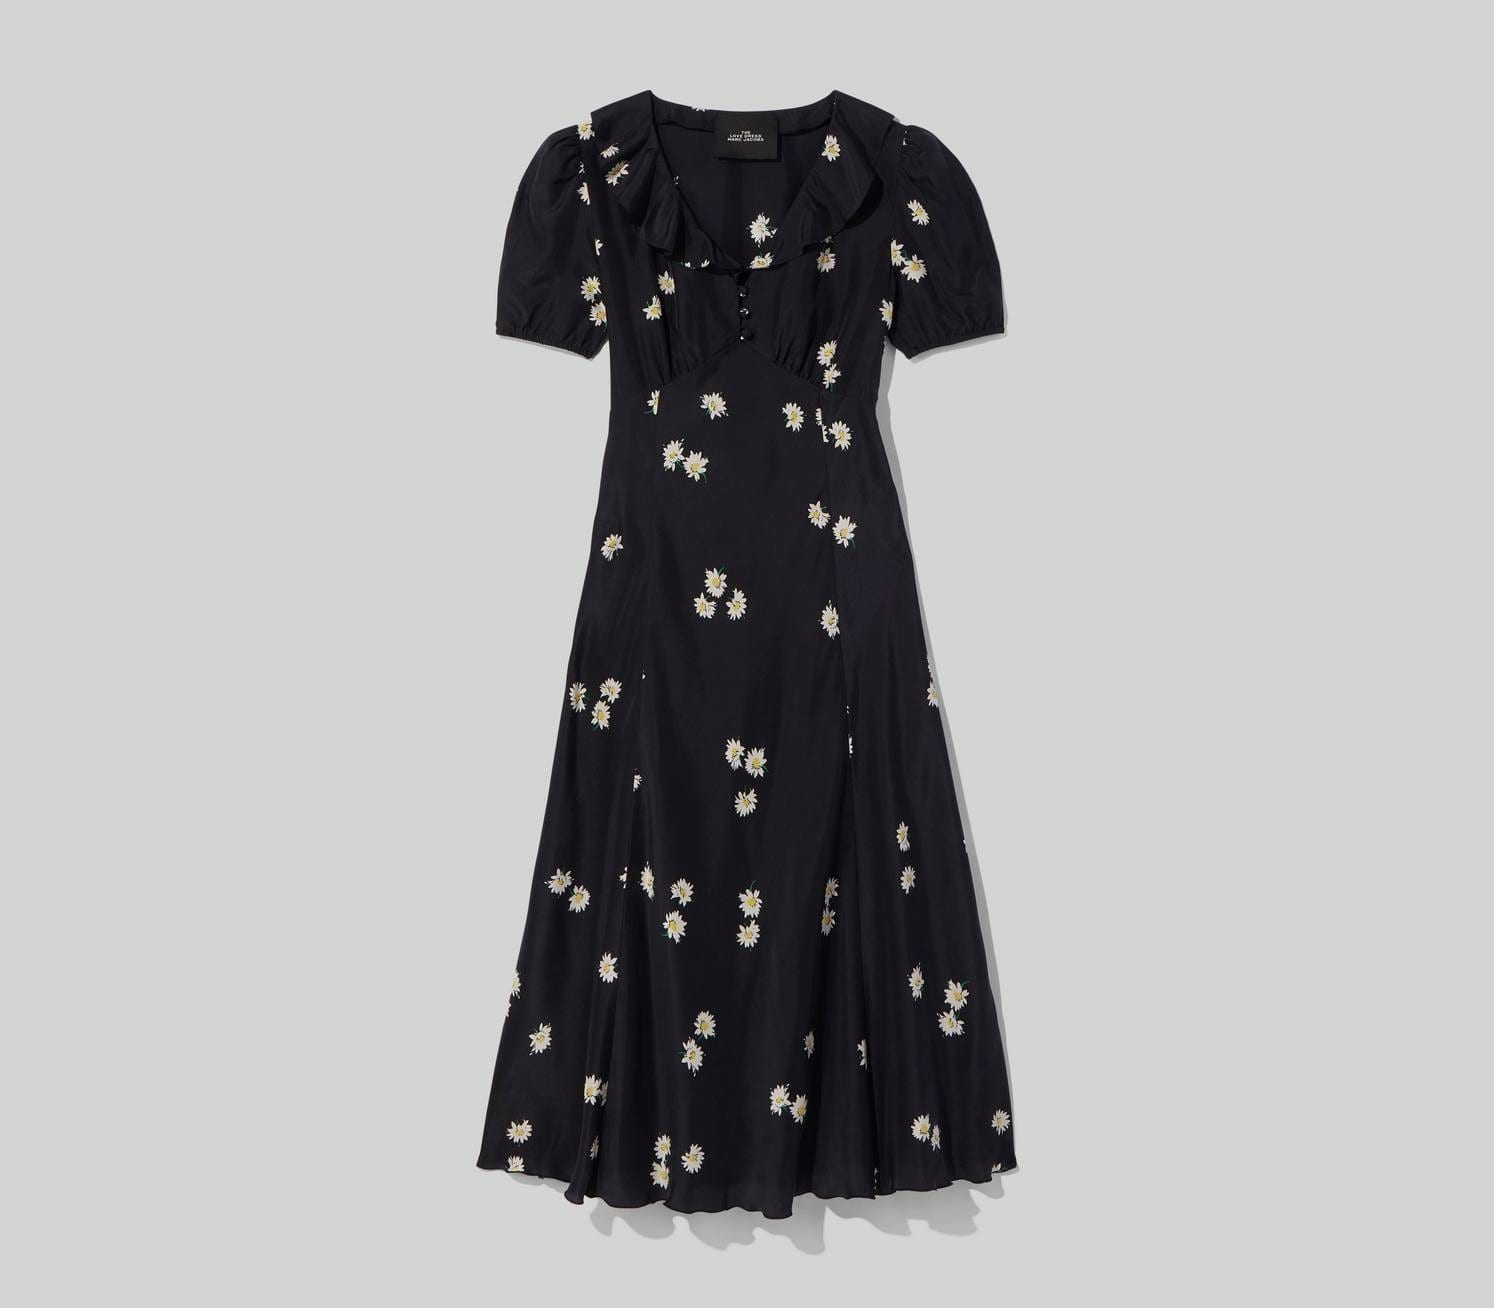 MARC JACOBS Love Dress